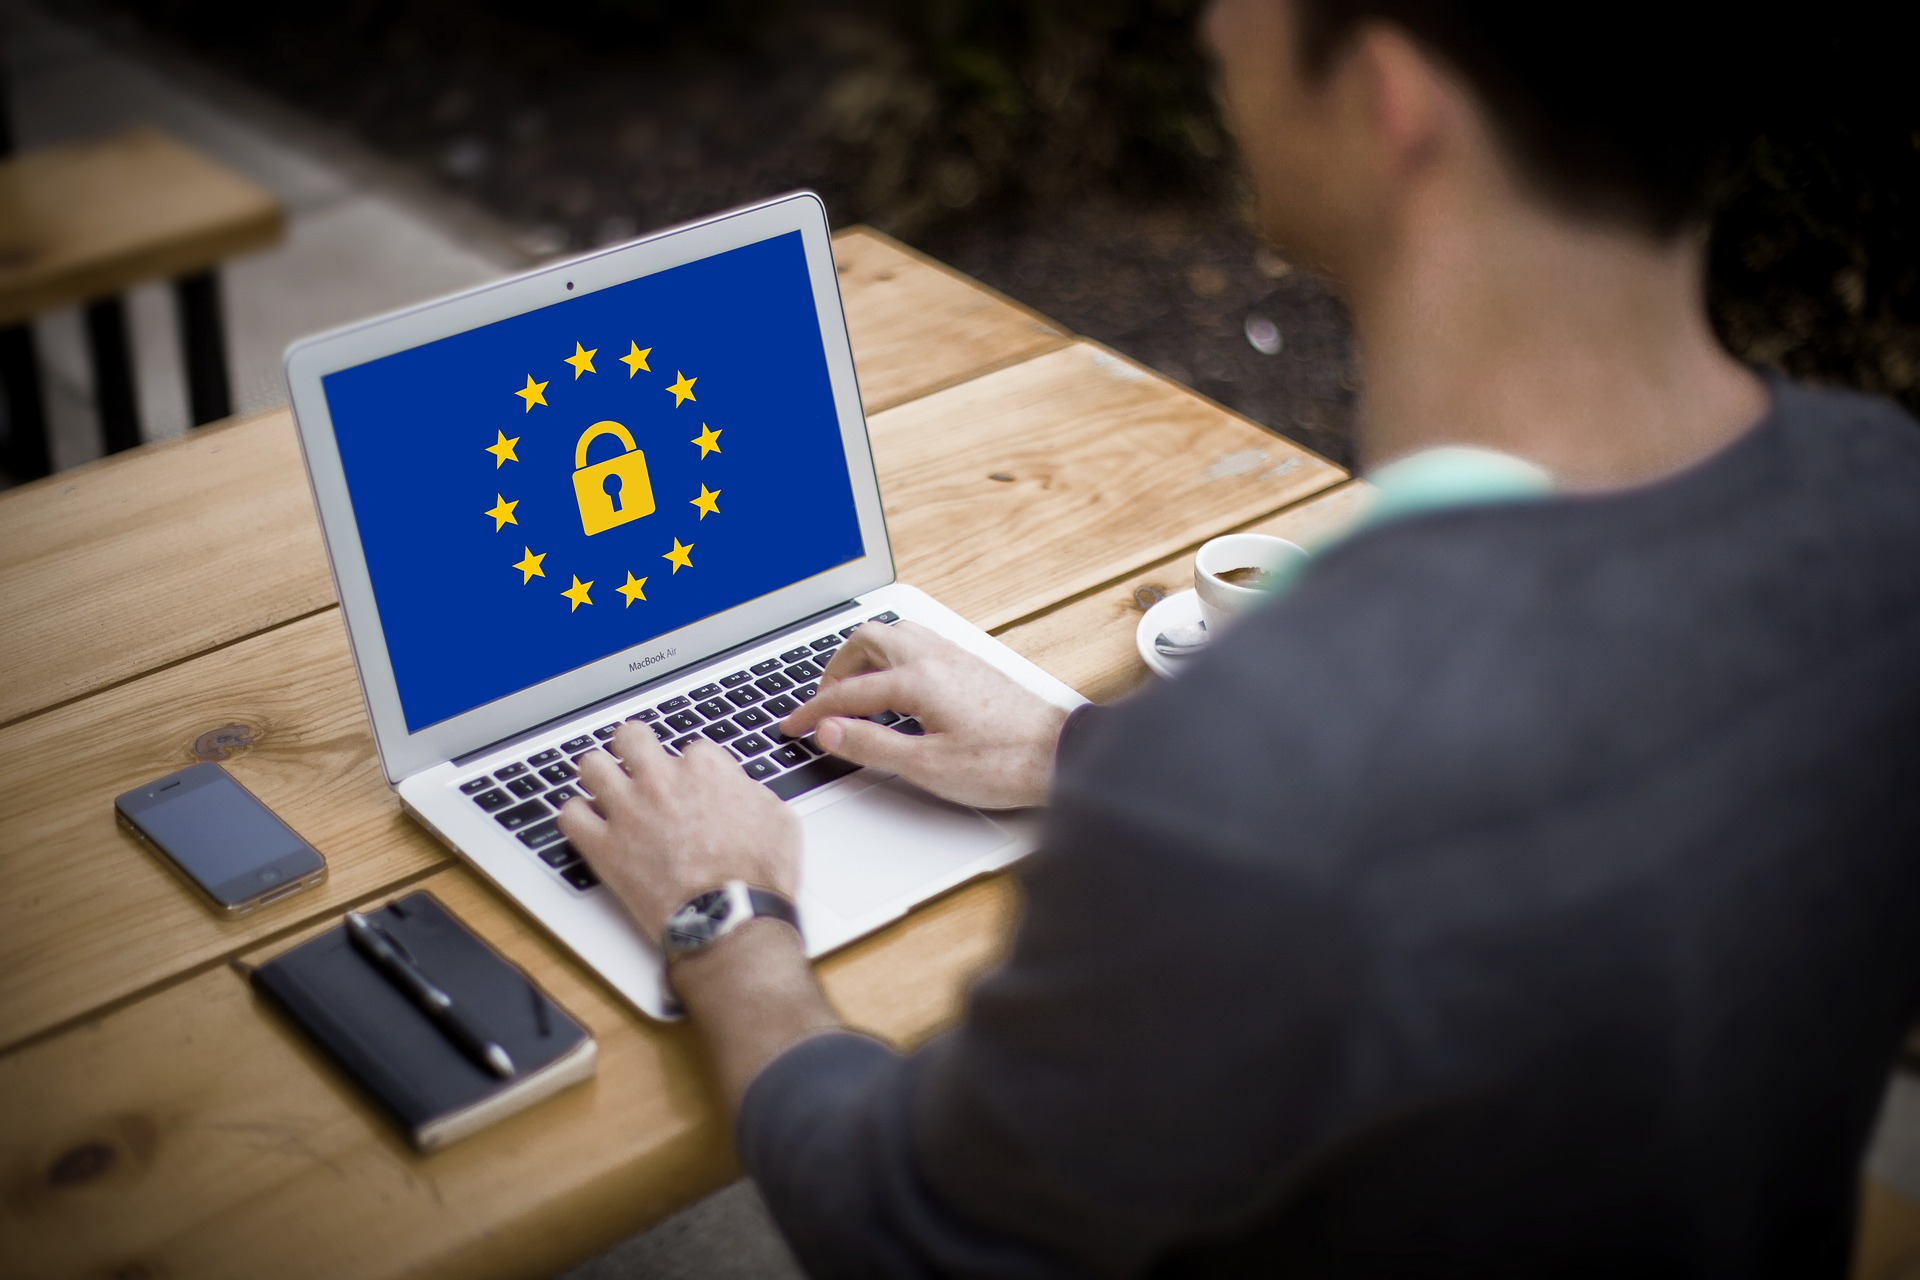 General Data Protection Regulation (GDPR) Guidance